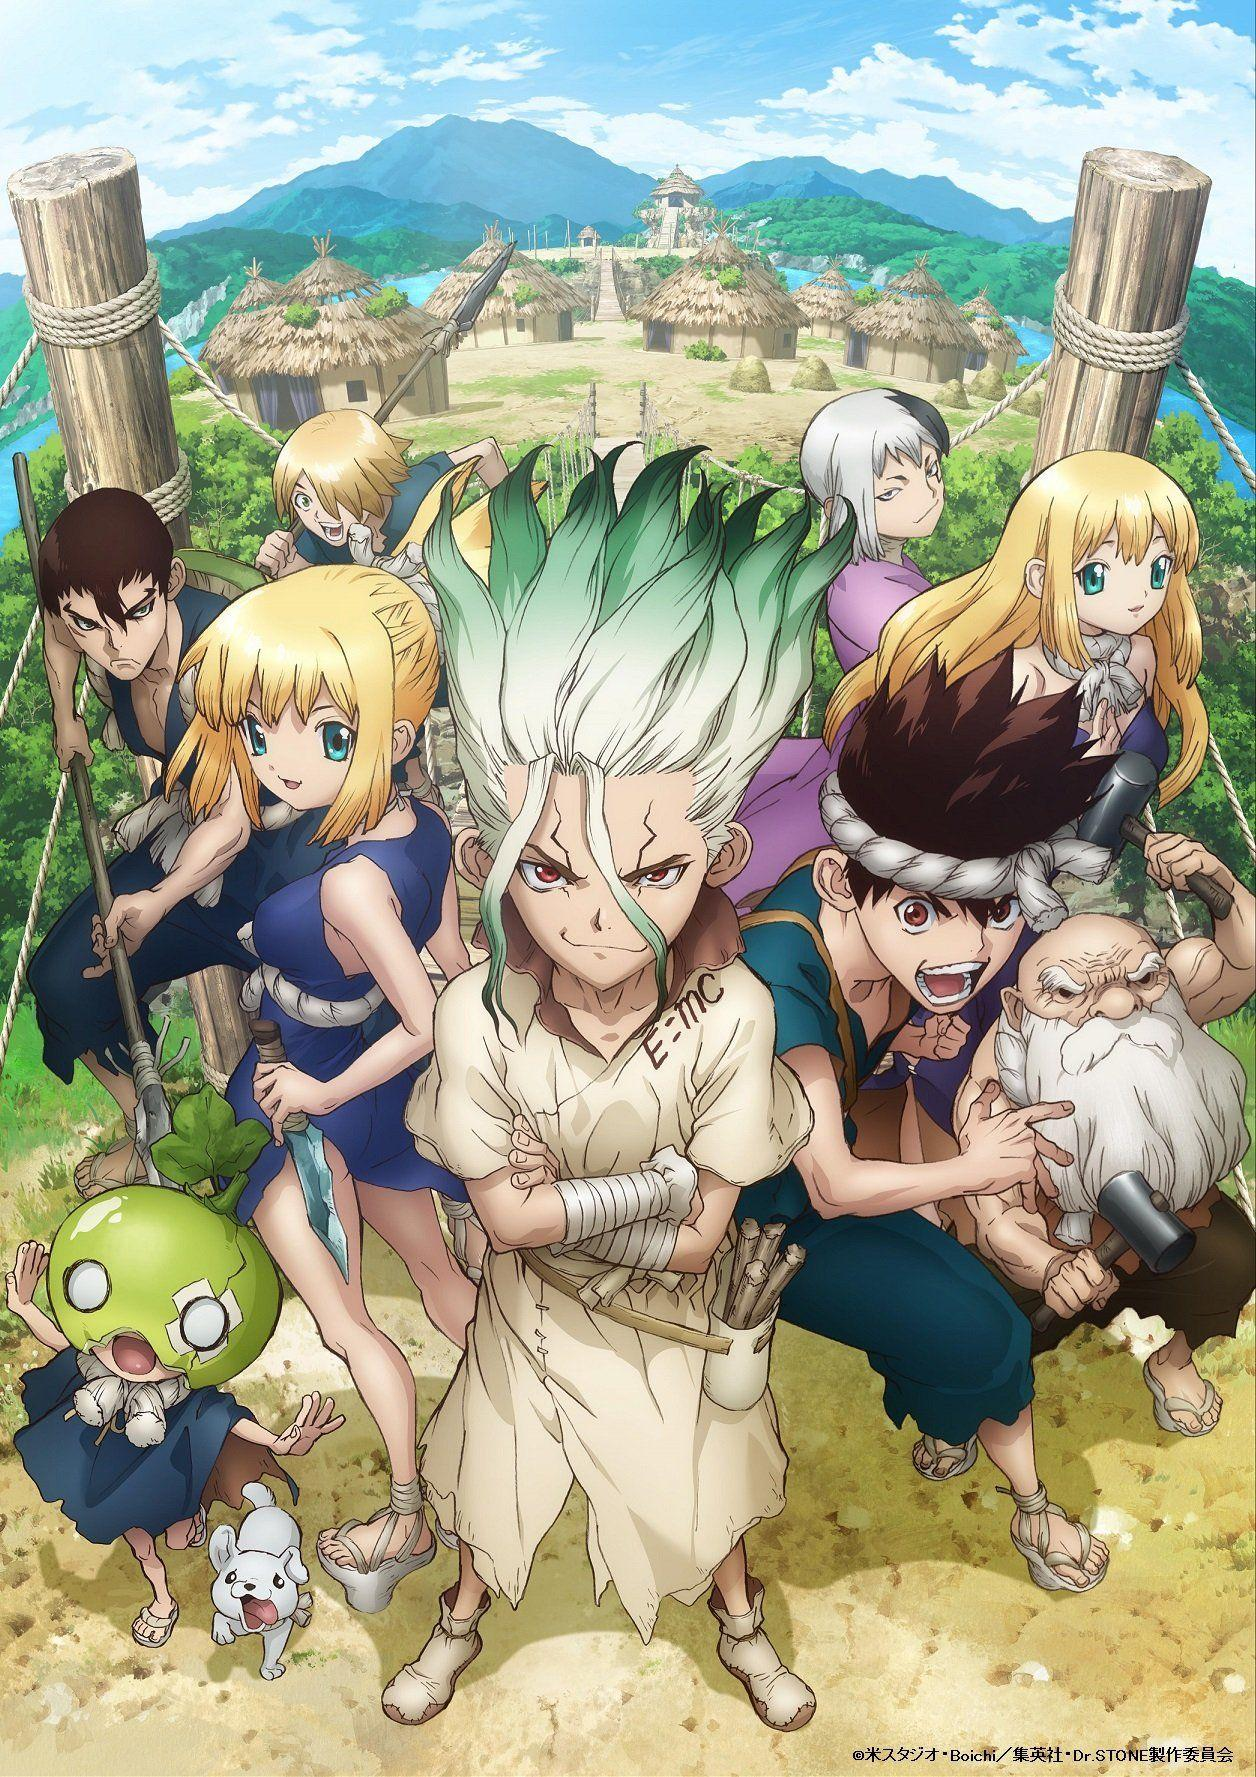 Dr Stone Wallpaper Hd : stone, wallpaper, Anime, Stone, Android, Wallpapers, Wallpaper